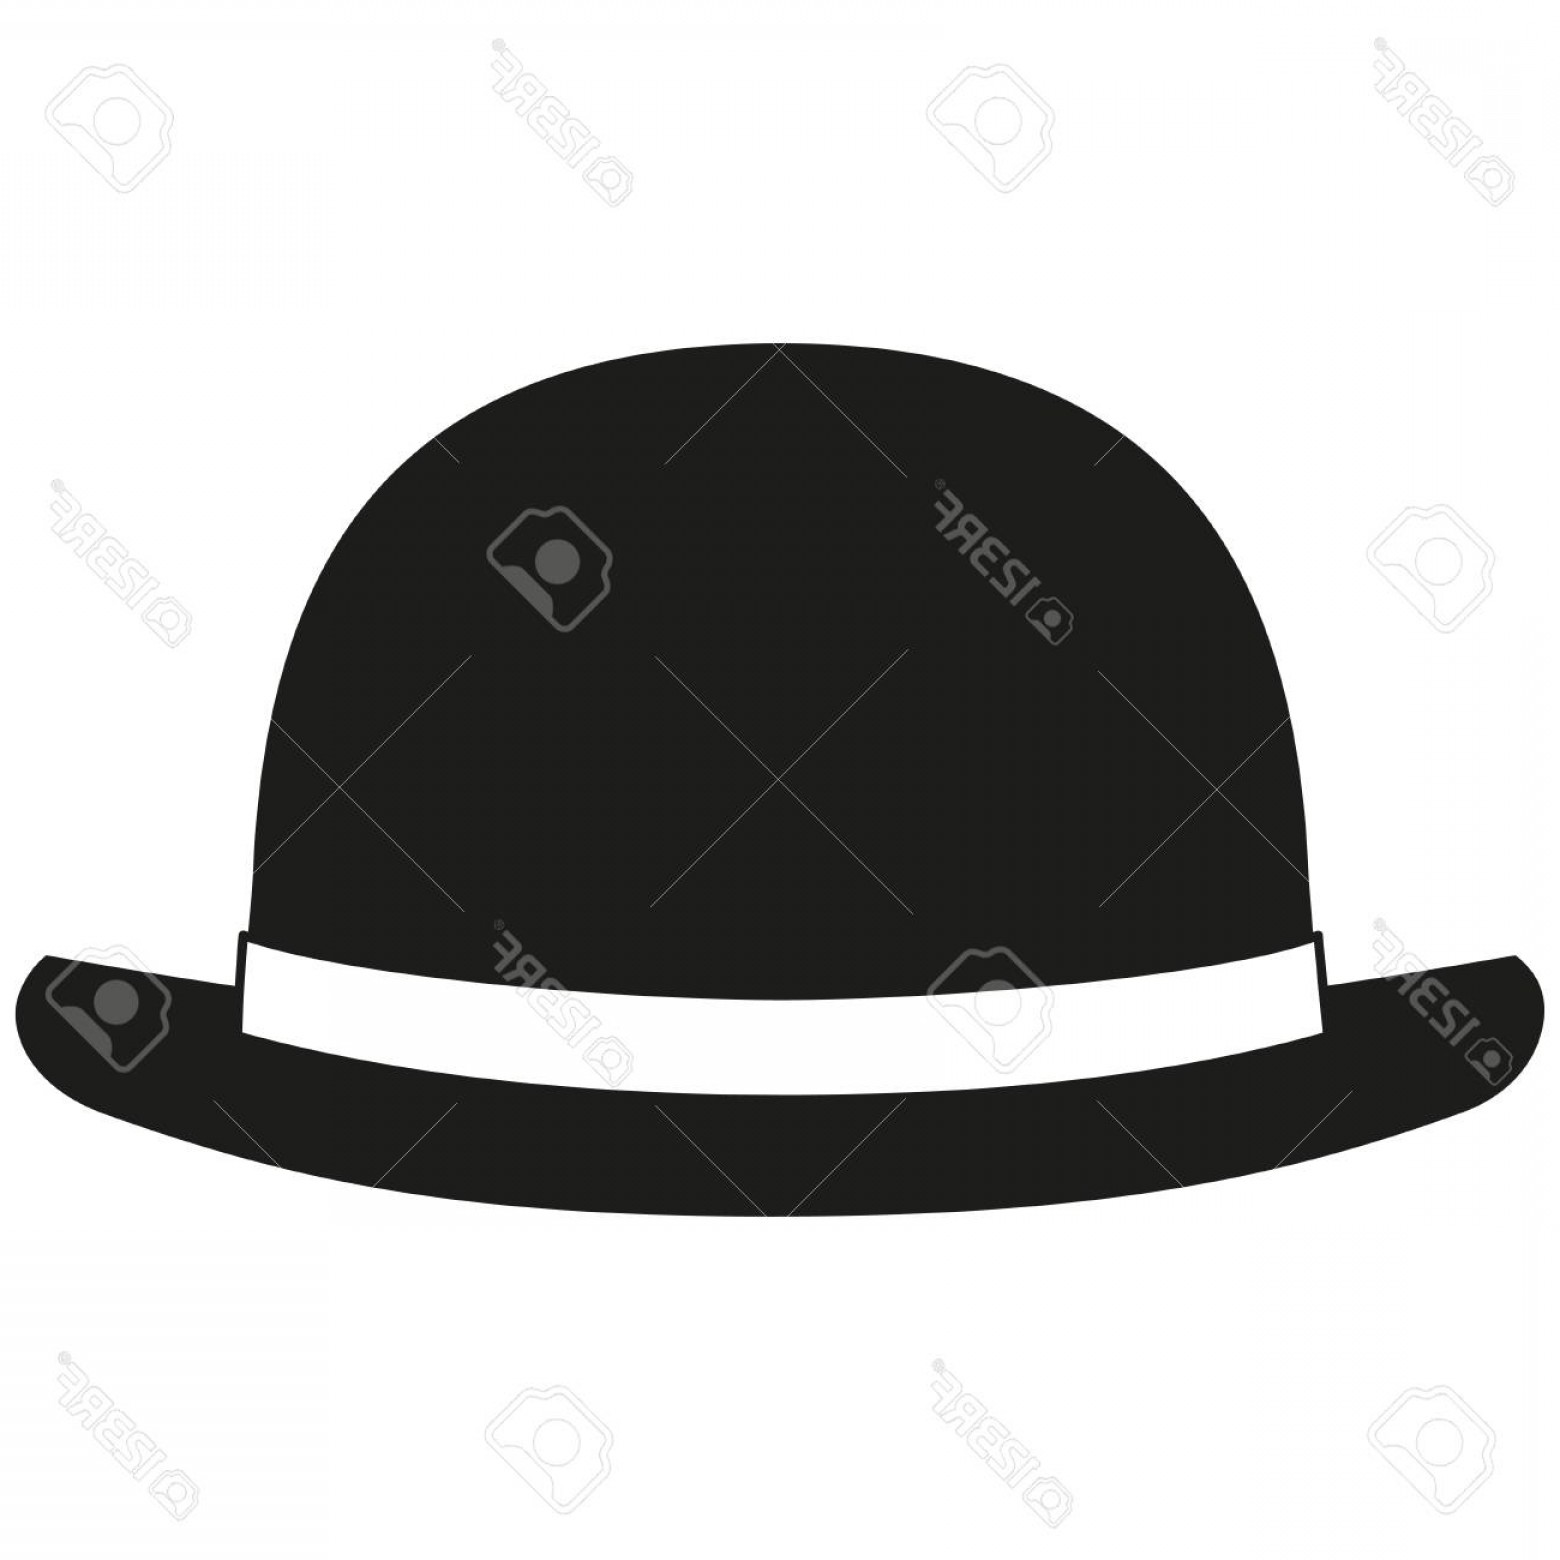 Bowler Hat Vector: Photostock Vector Black And White Bowler Hat Silhouette Hipster Themed Vector Illustration For Gift Card Certificate S